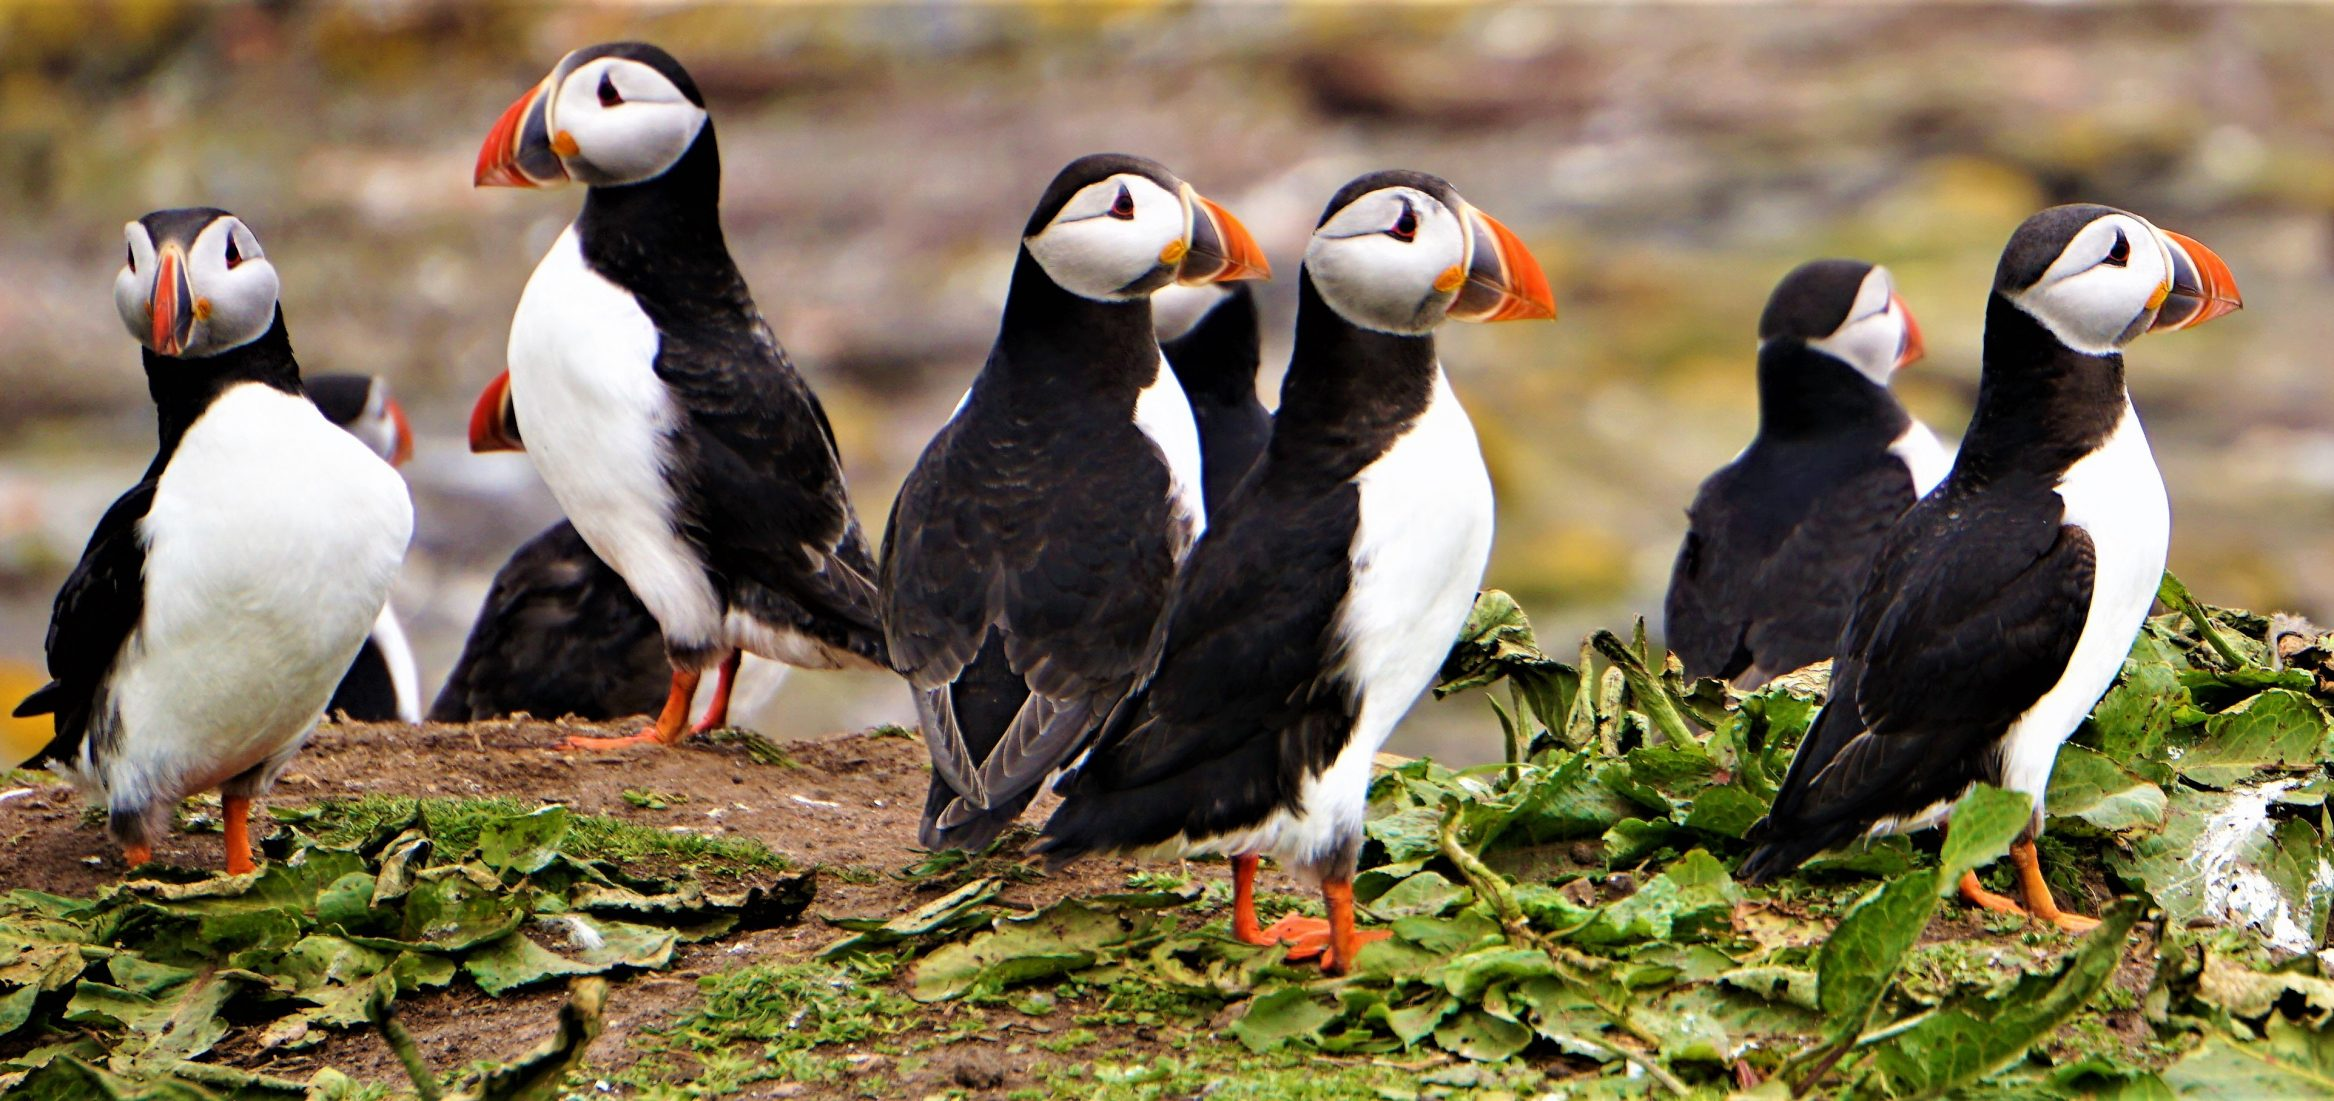 puffins-colony-rspb-wildlife-photography